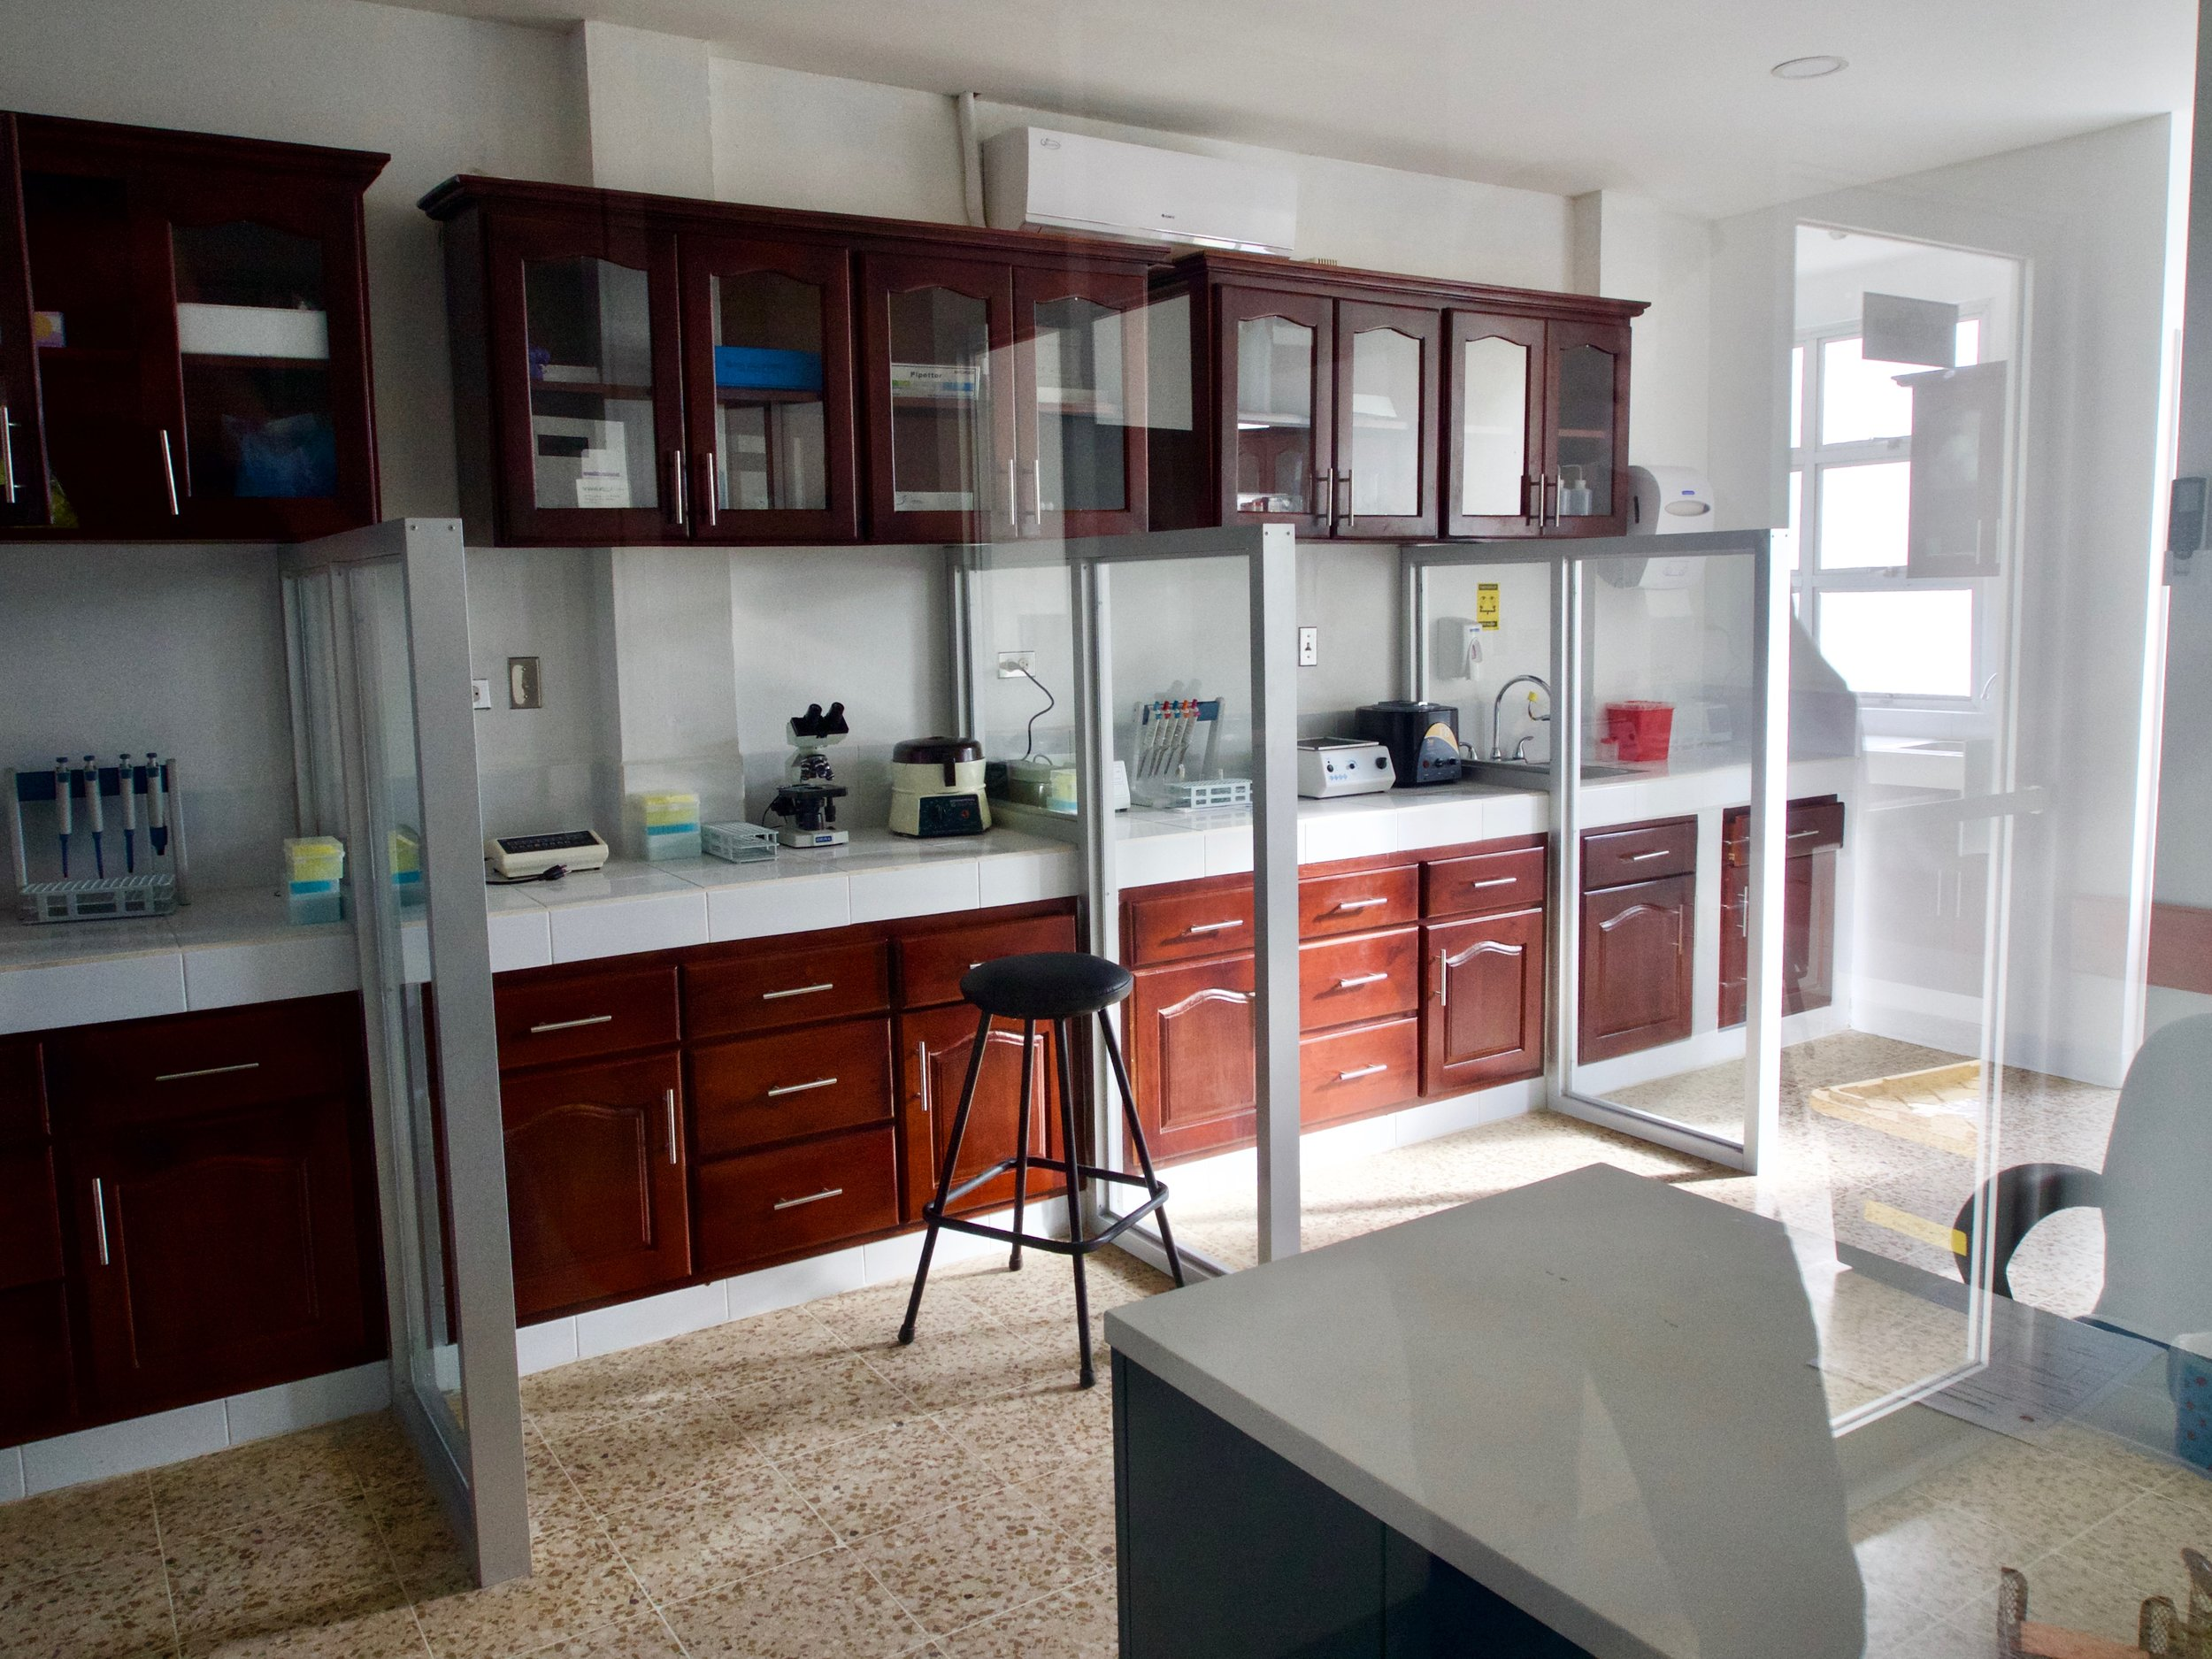 Lab space in the new Jinotega clinic, which opened to patients on February 1